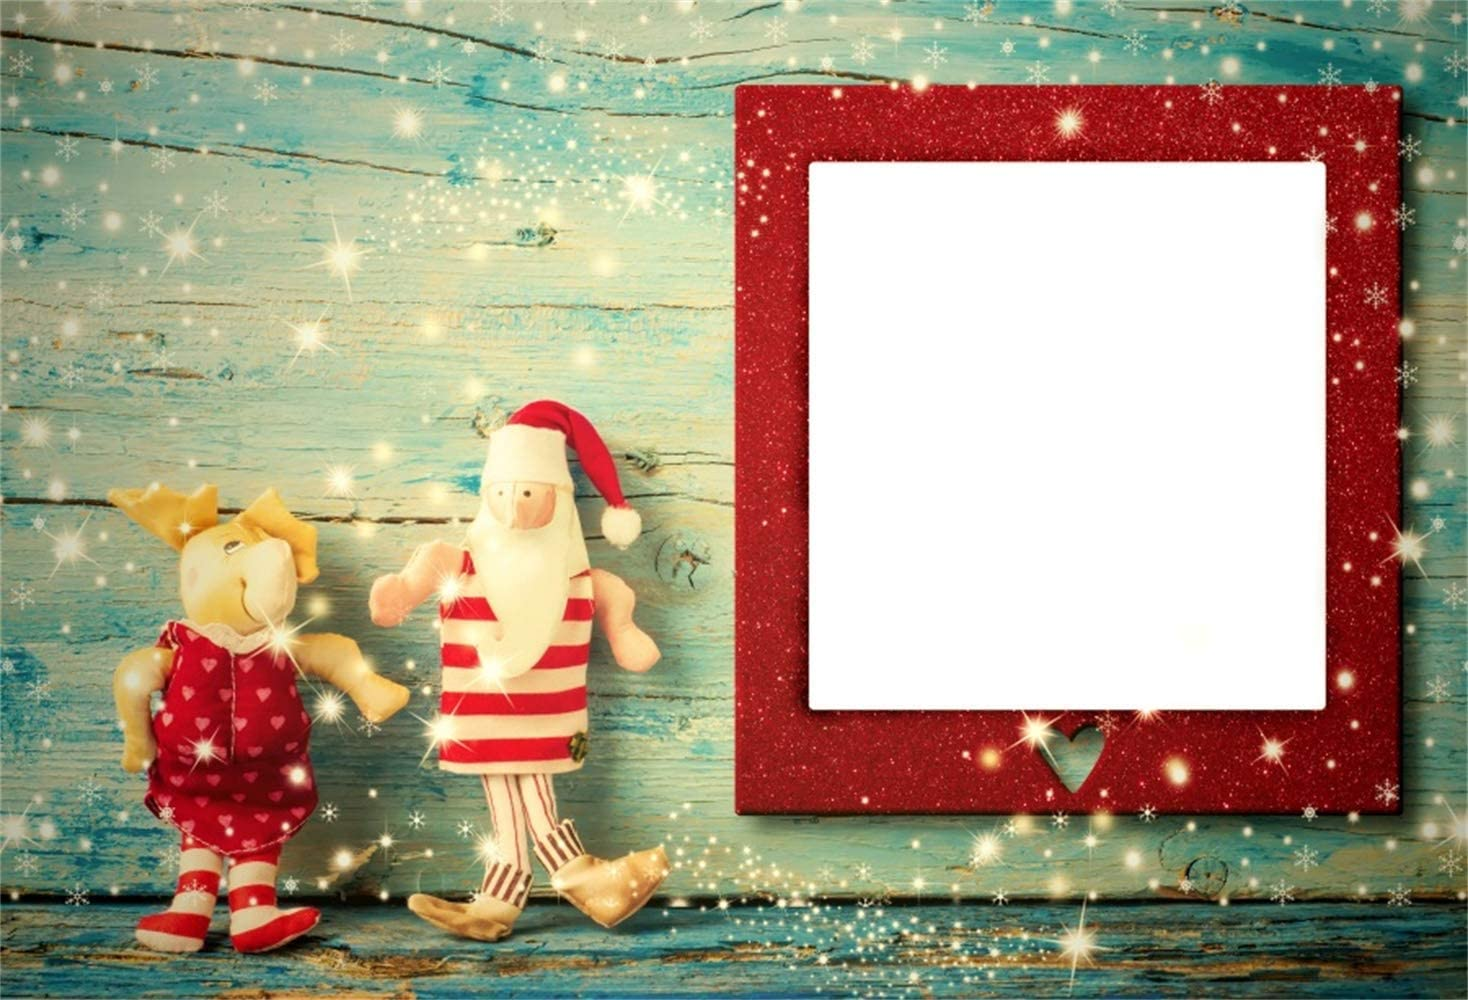 H Polyester Children Christmas Photography Background 7ft W x5ft Xmas Doll Twinkle Stars Pale Green Wood Texture Plank Red Photoframe Xmas Paty Banner Child Kids Portrait Shoot